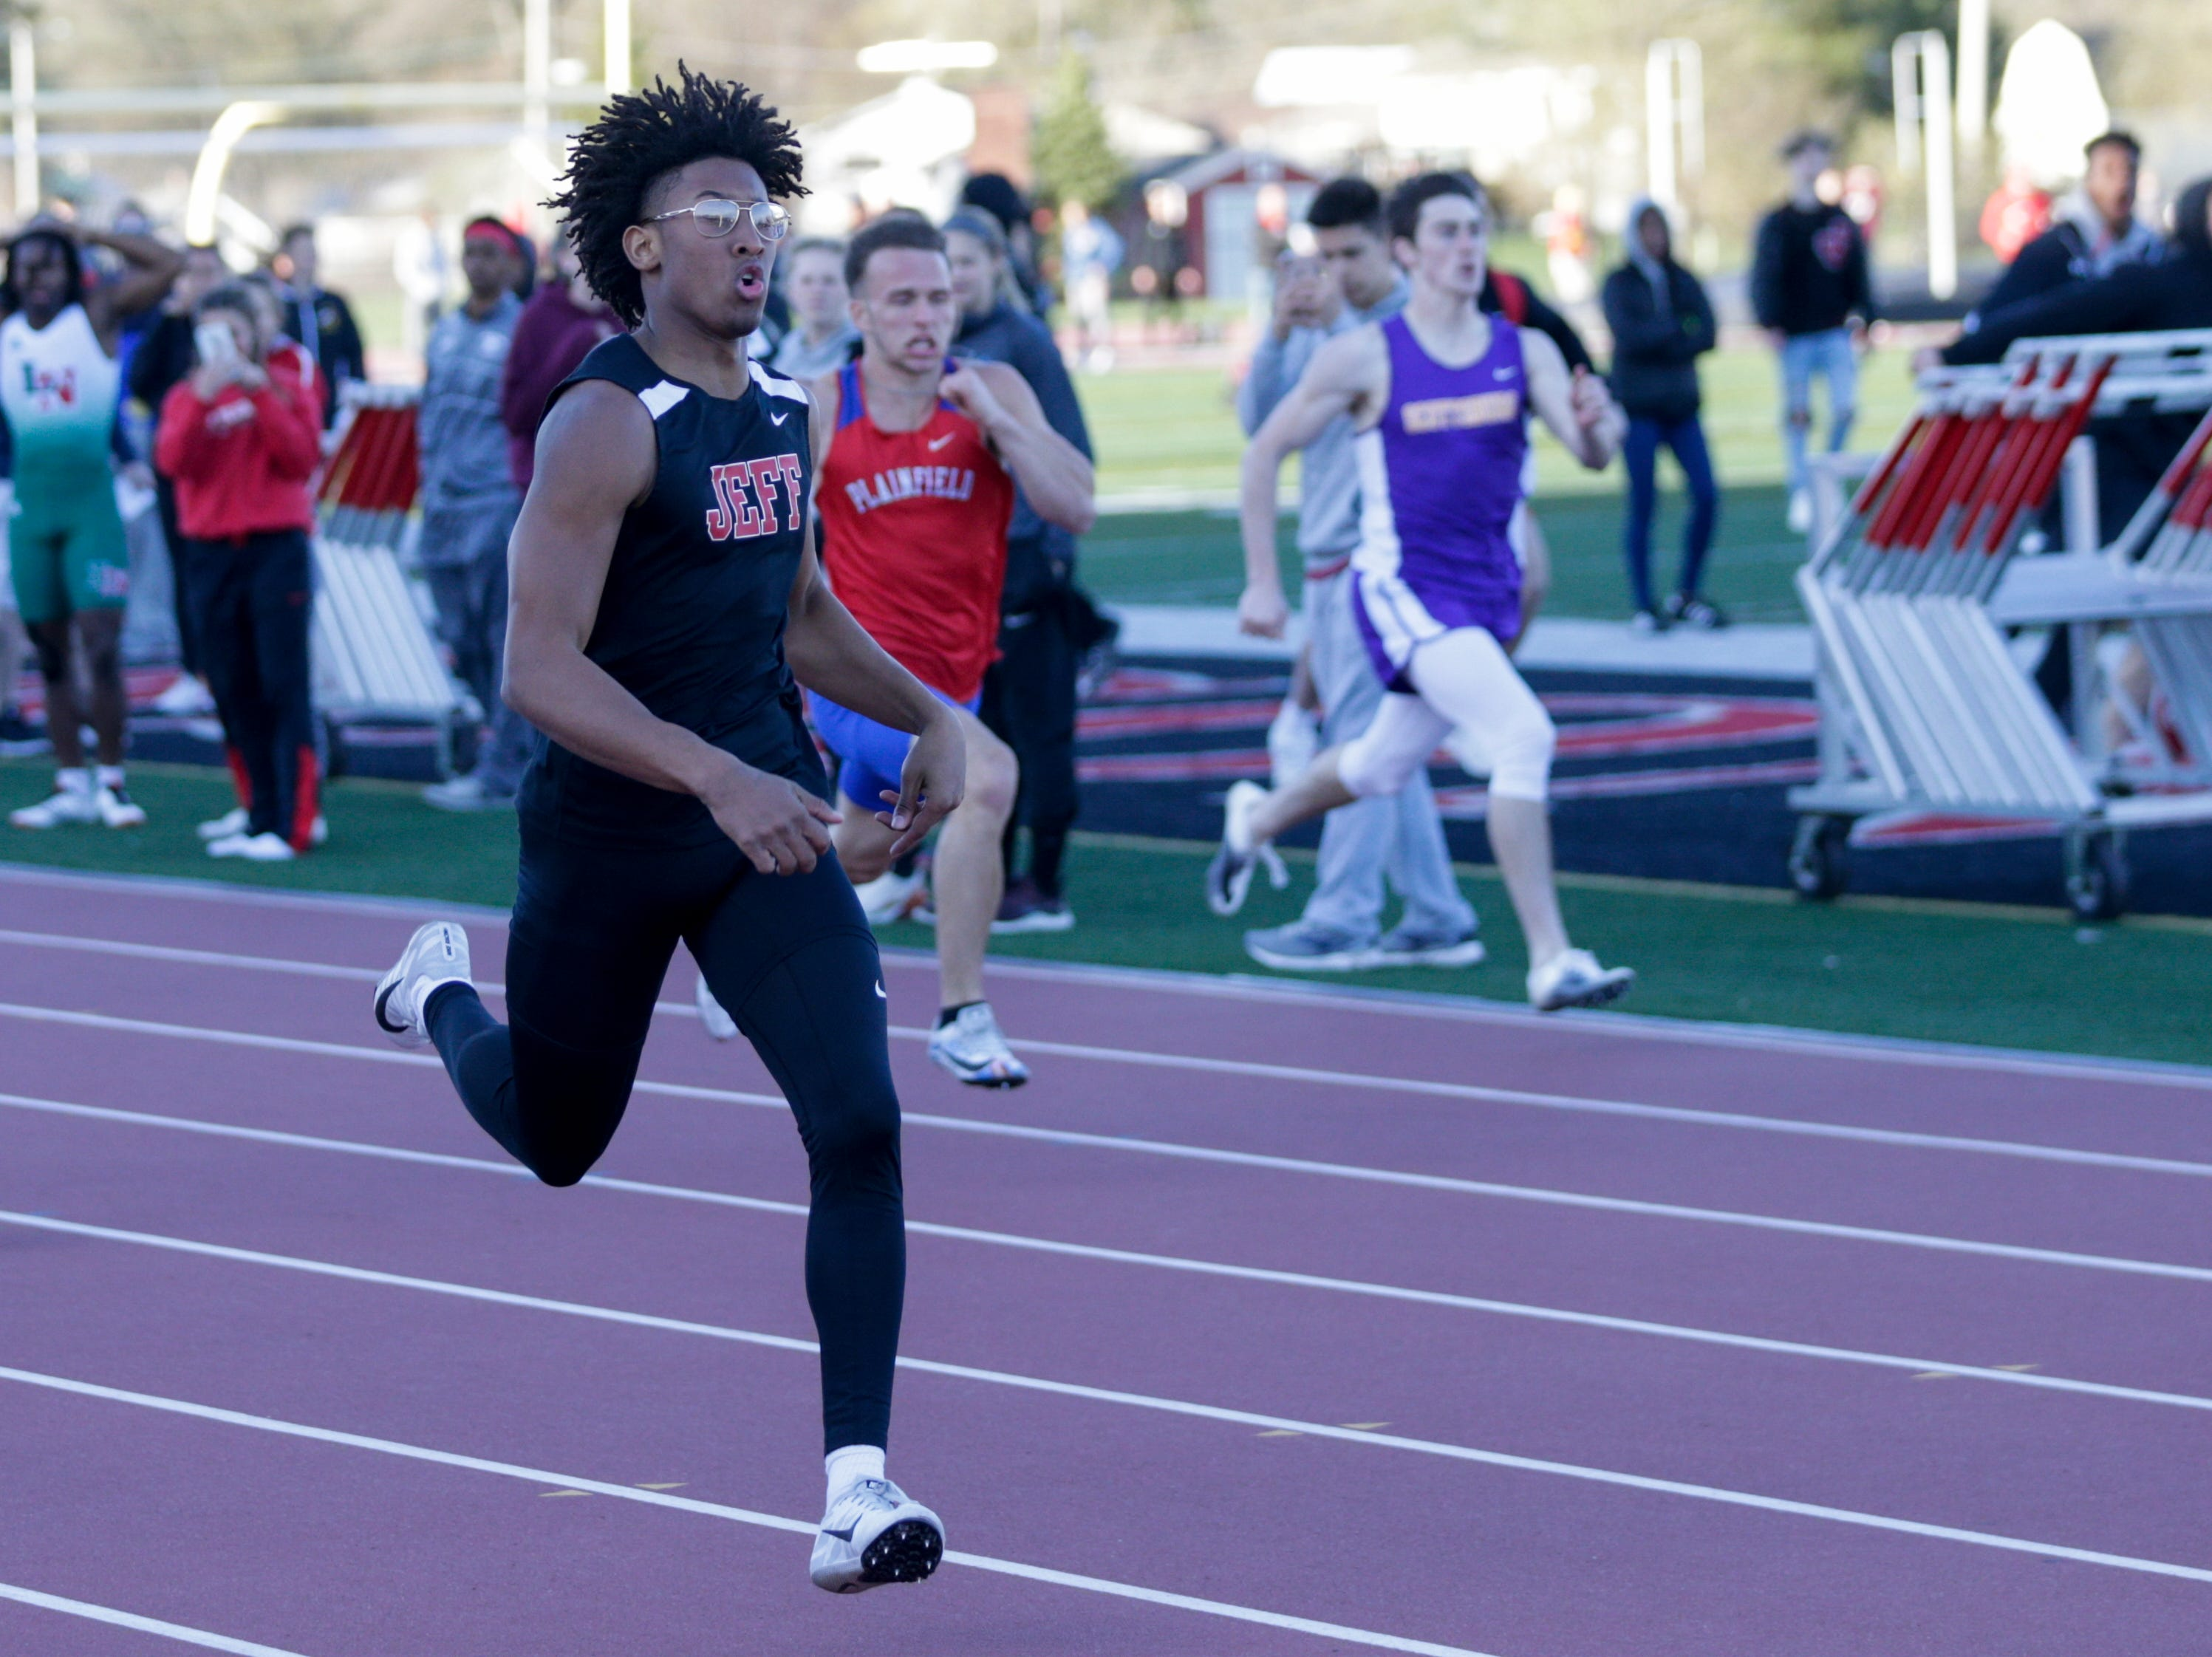 Lafayette Jeff's Thomas Hogan competes in the men's 200 meter dash during the 2019 Sprinters Showcase, Friday, April 12, 2019, at Lafayette Jeff High School in Lafayette.